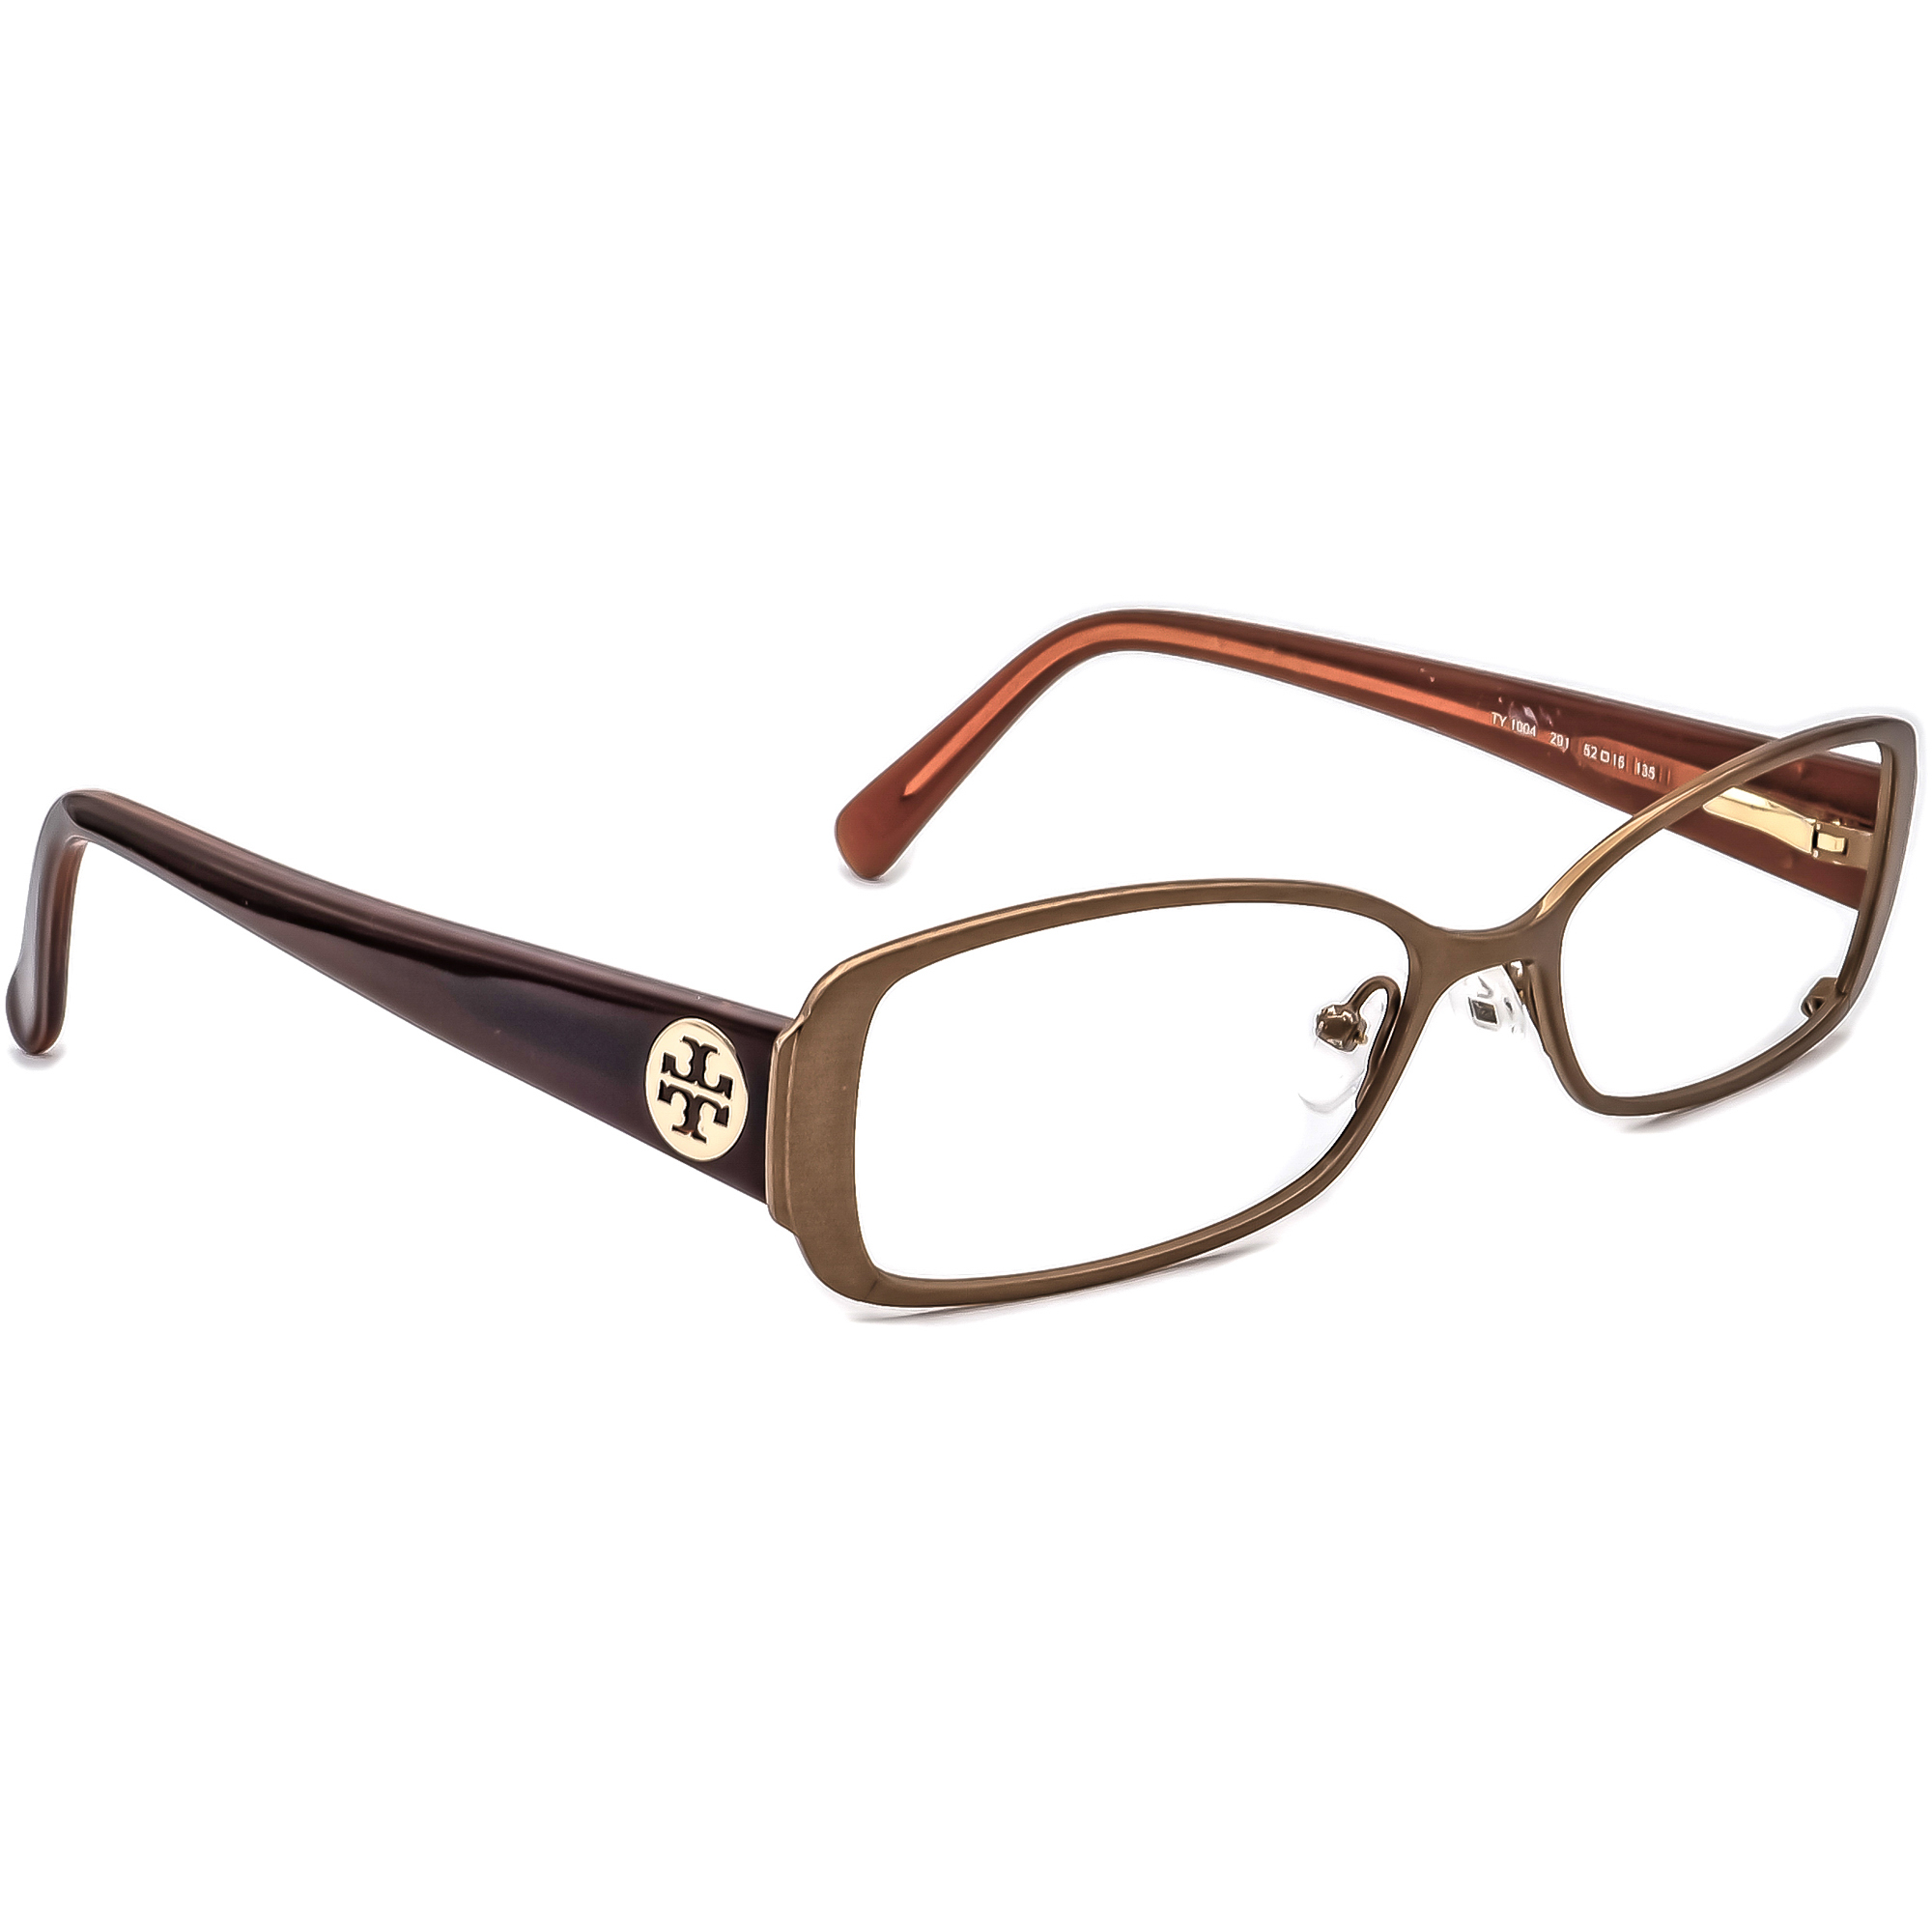 Tory Burch TY 1004 291 Eyeglasses